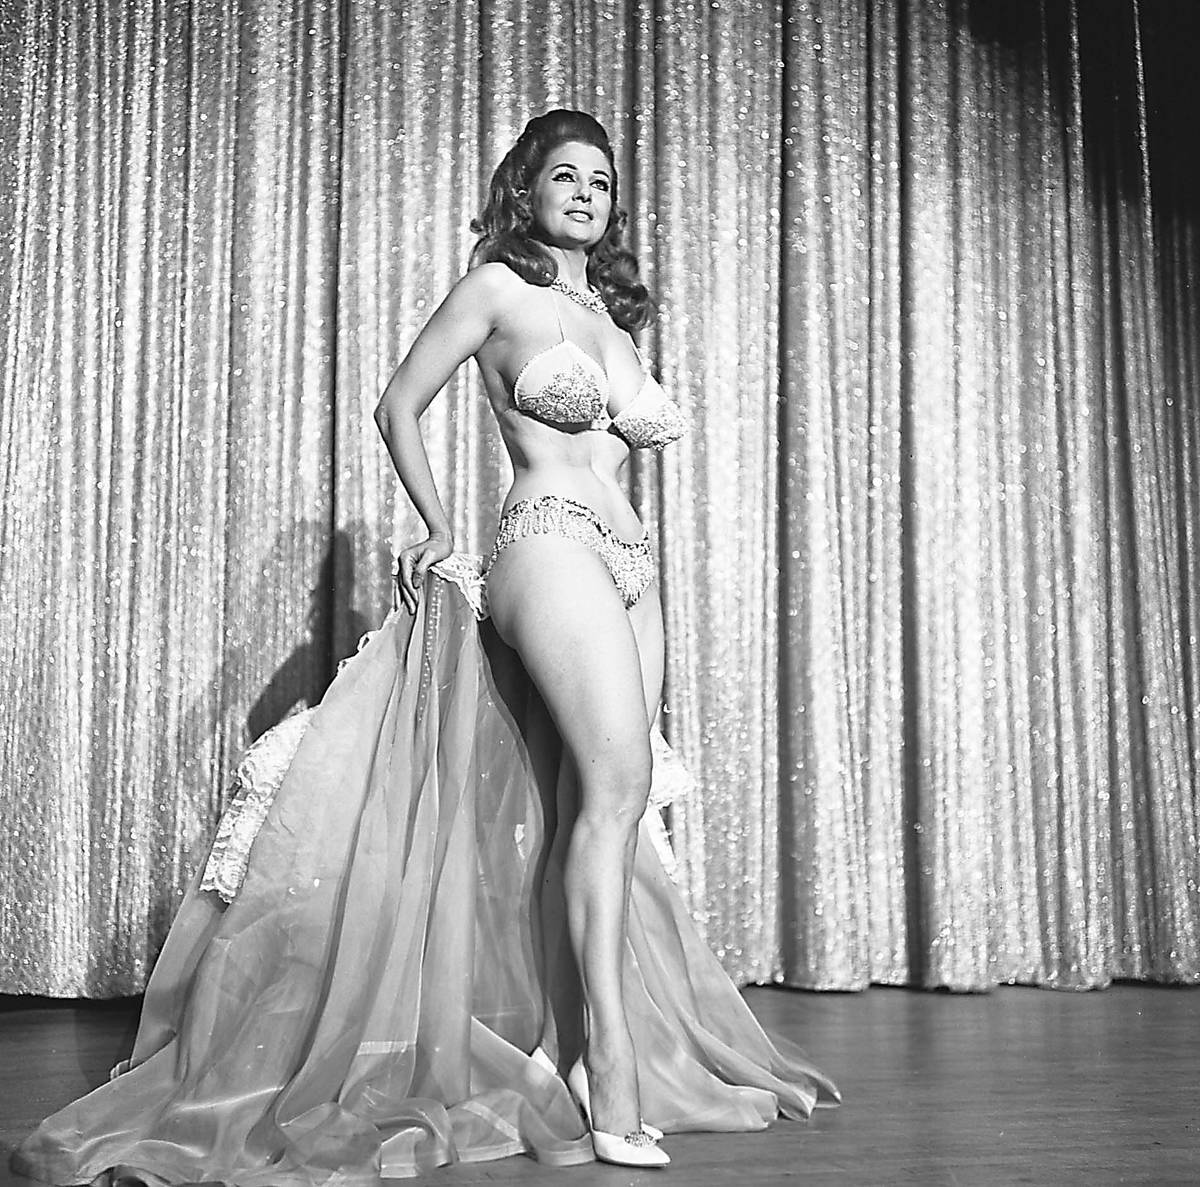 Tempest Storm performs at the Aladdin in November 1969. (Special to View)